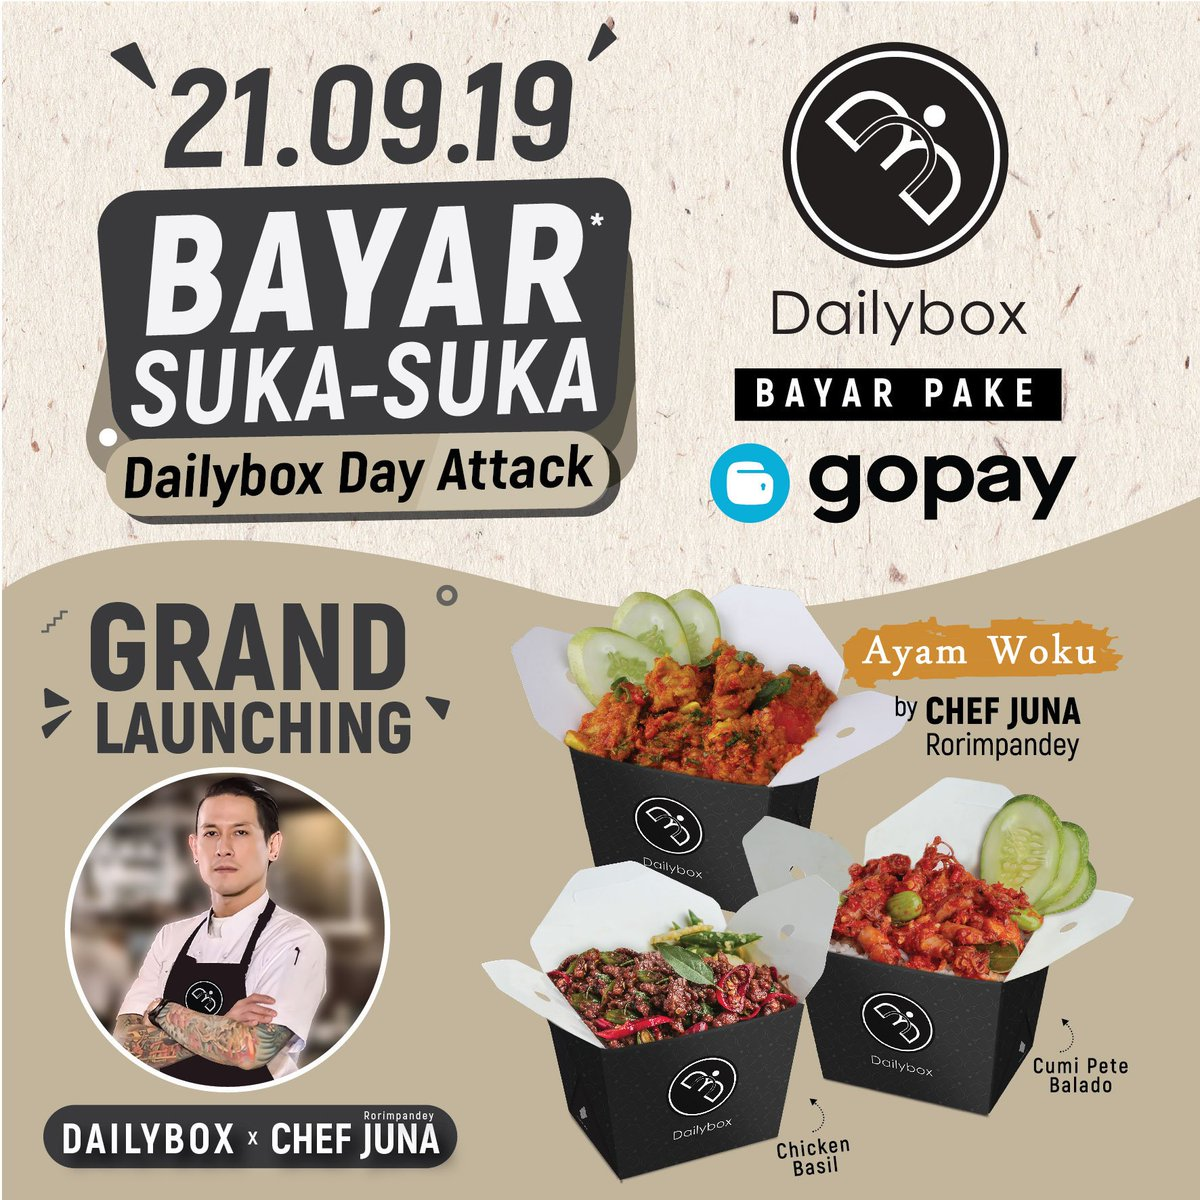 Grand Indonesia On Twitter Come And Join The Hype At Dailybox Day Attack 21 09 2019 Choose Your Favorite Menu And Pay It As You Like Be The First To Try Dailybox S Collaboration Menu